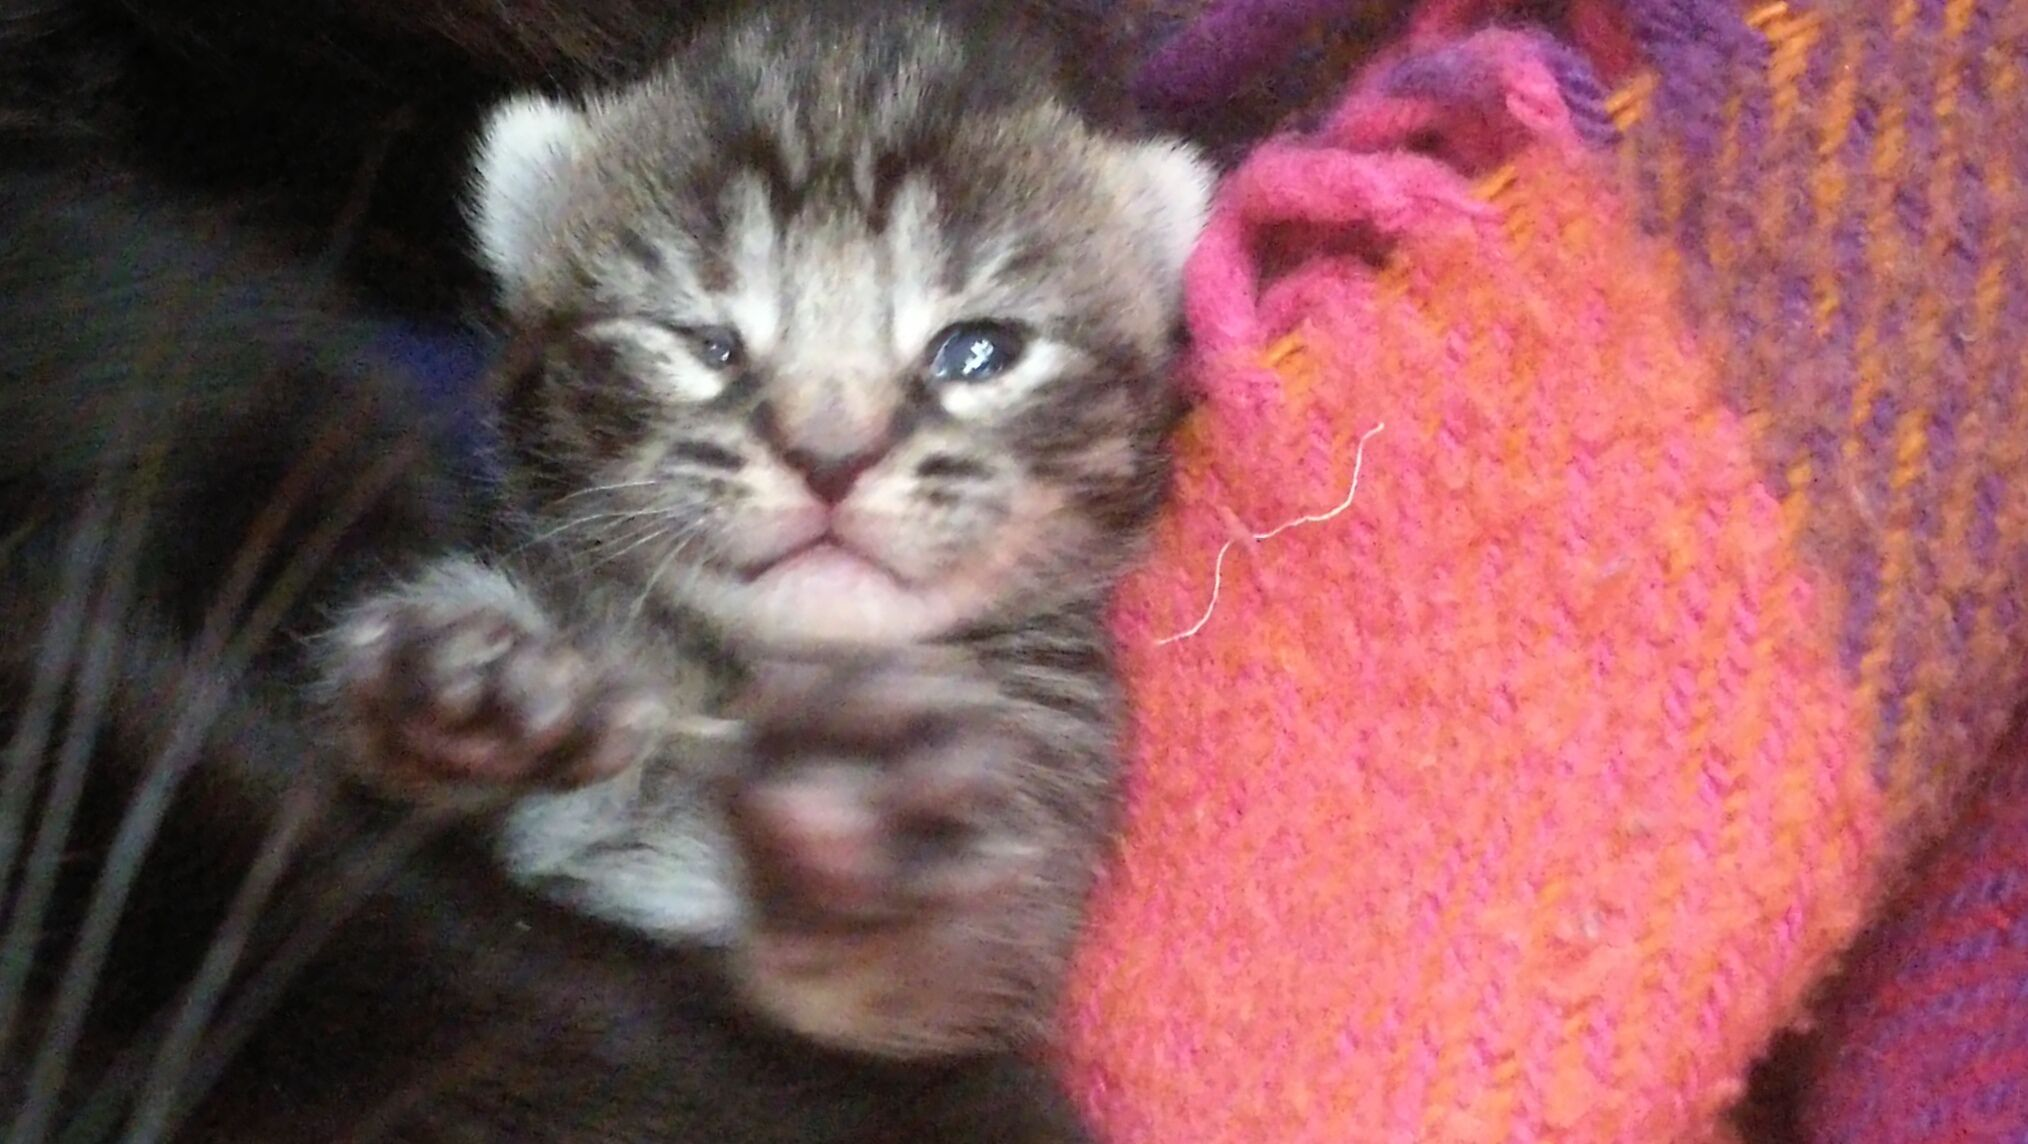 The Kittens Are 9 Days Old Now And Opening Their Eyes Here Is Ronja Saying Hi Kittens Cats Animals